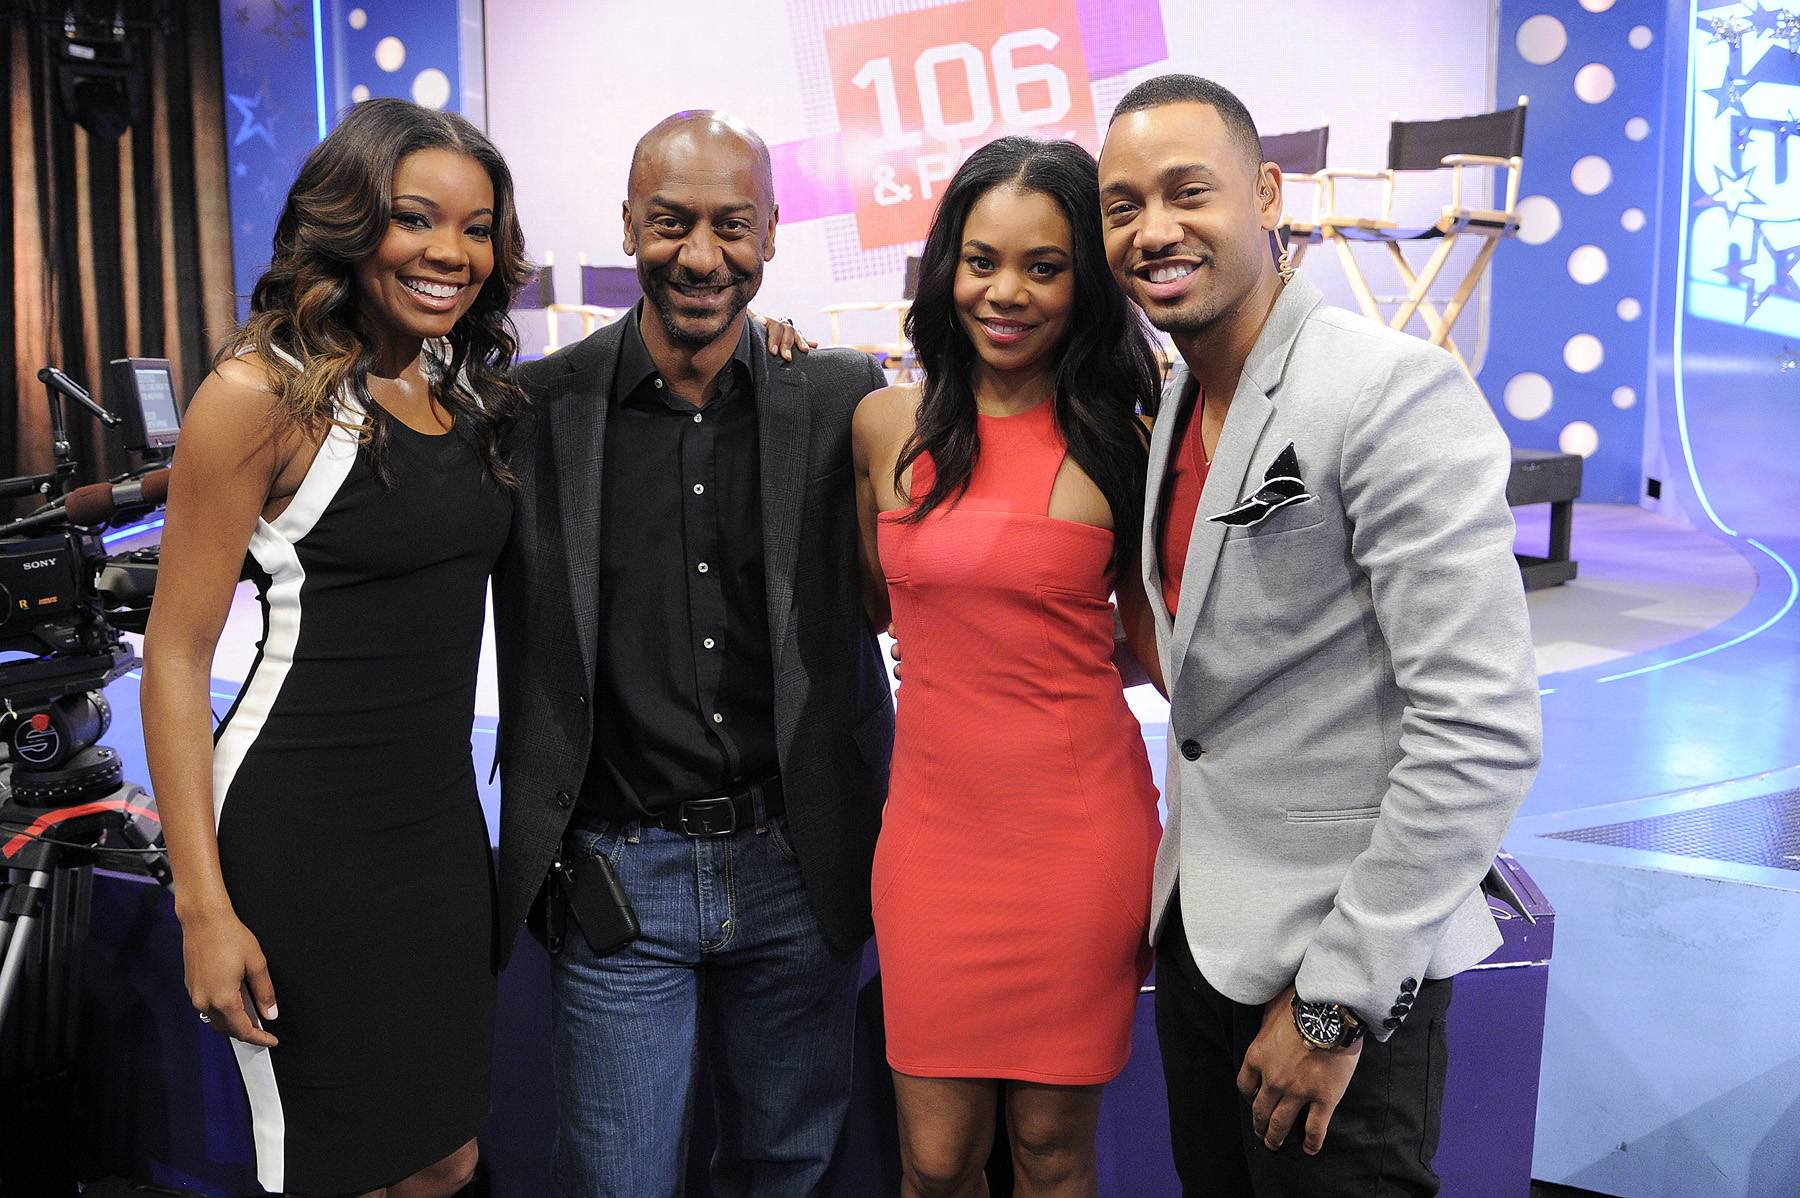 Gabrielle Union, Stephen Hill, Regina Hall and Terrence J - Gabrielle Union, Stephen Hill, Regina Hall and Terrence J at 106 & Park, April 5, 2012. (photo: John Ricard / BET)